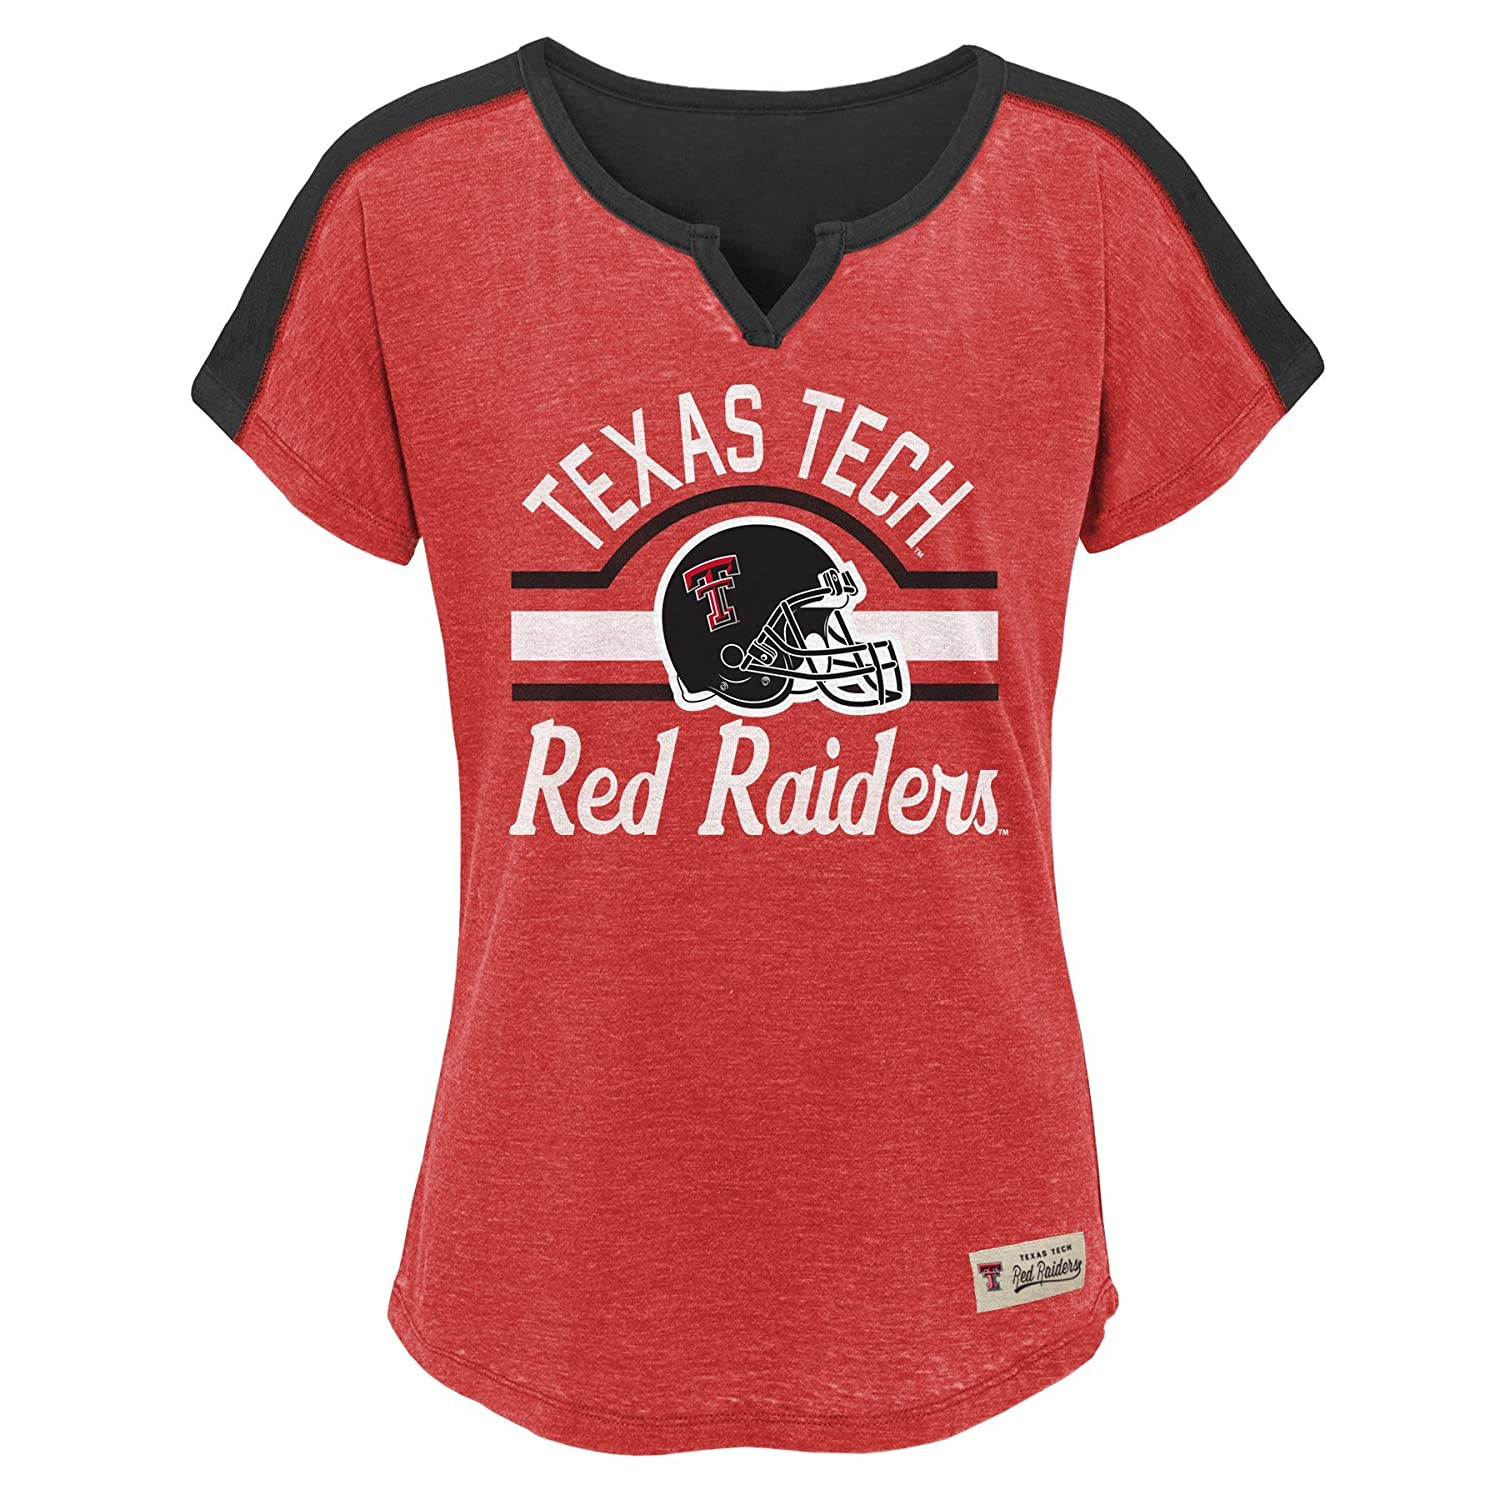 NCAA by Outerstuff NCAA Texas Tech Red Raiders Youth Girls Tribute Raglan Football Tee Red Youth Large 14